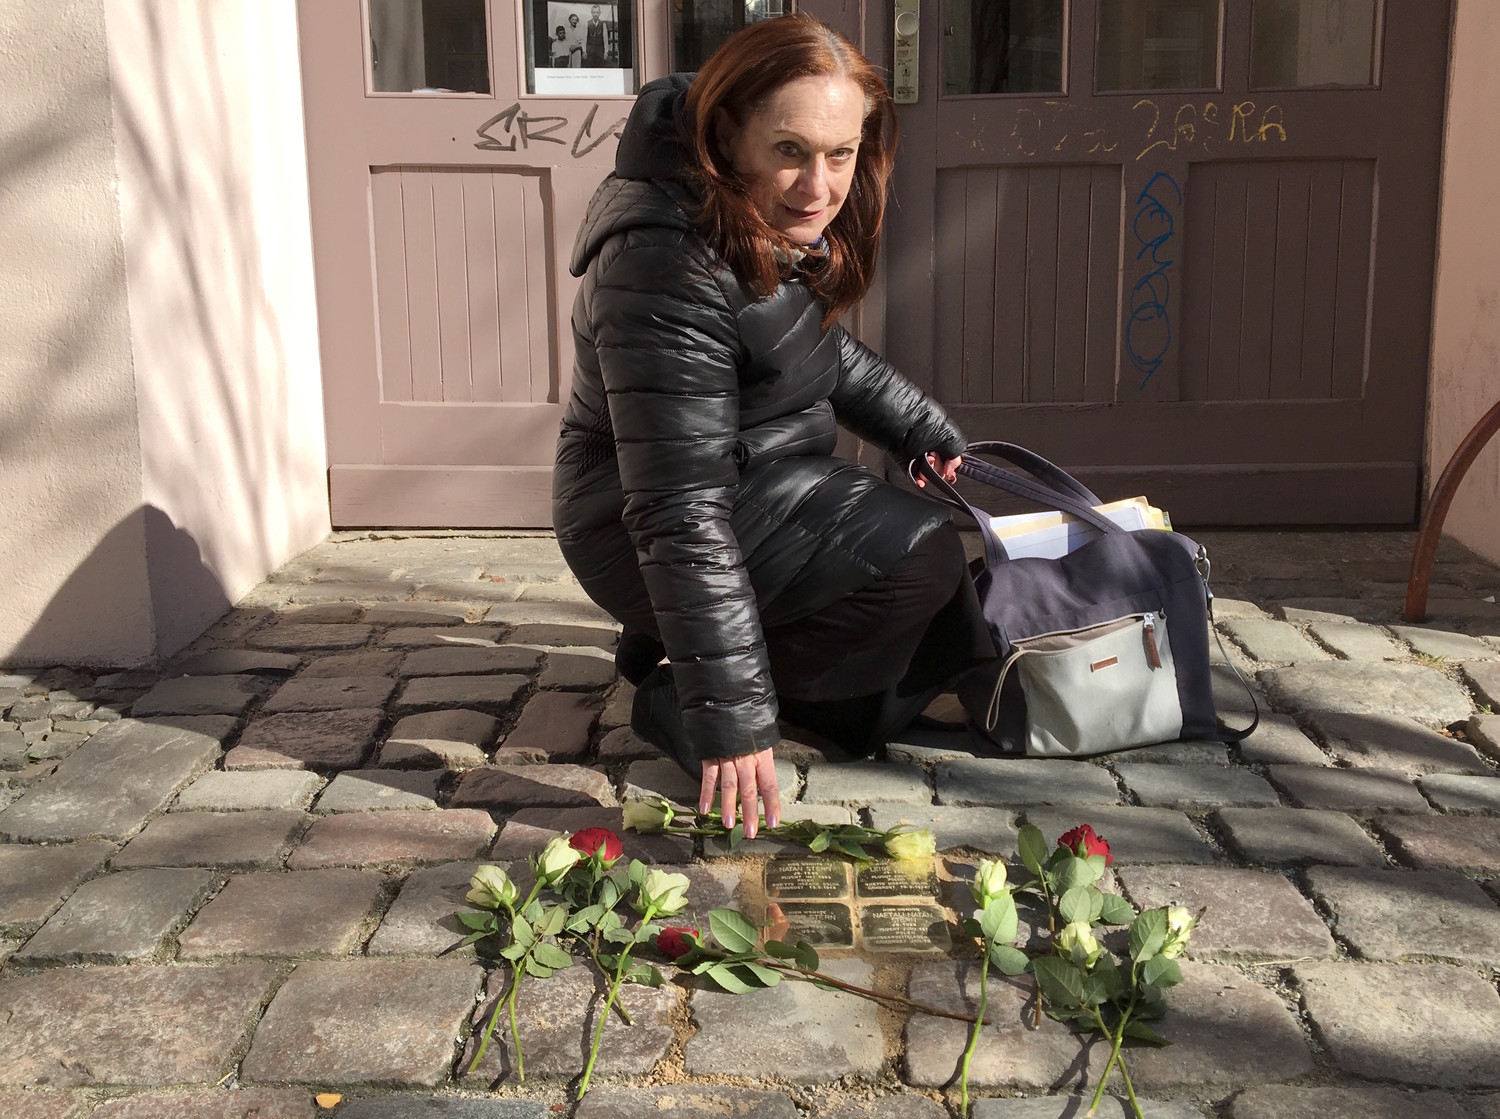 Lena Sonneberg at the Stolpersteine outside the building where her grandparents lived.